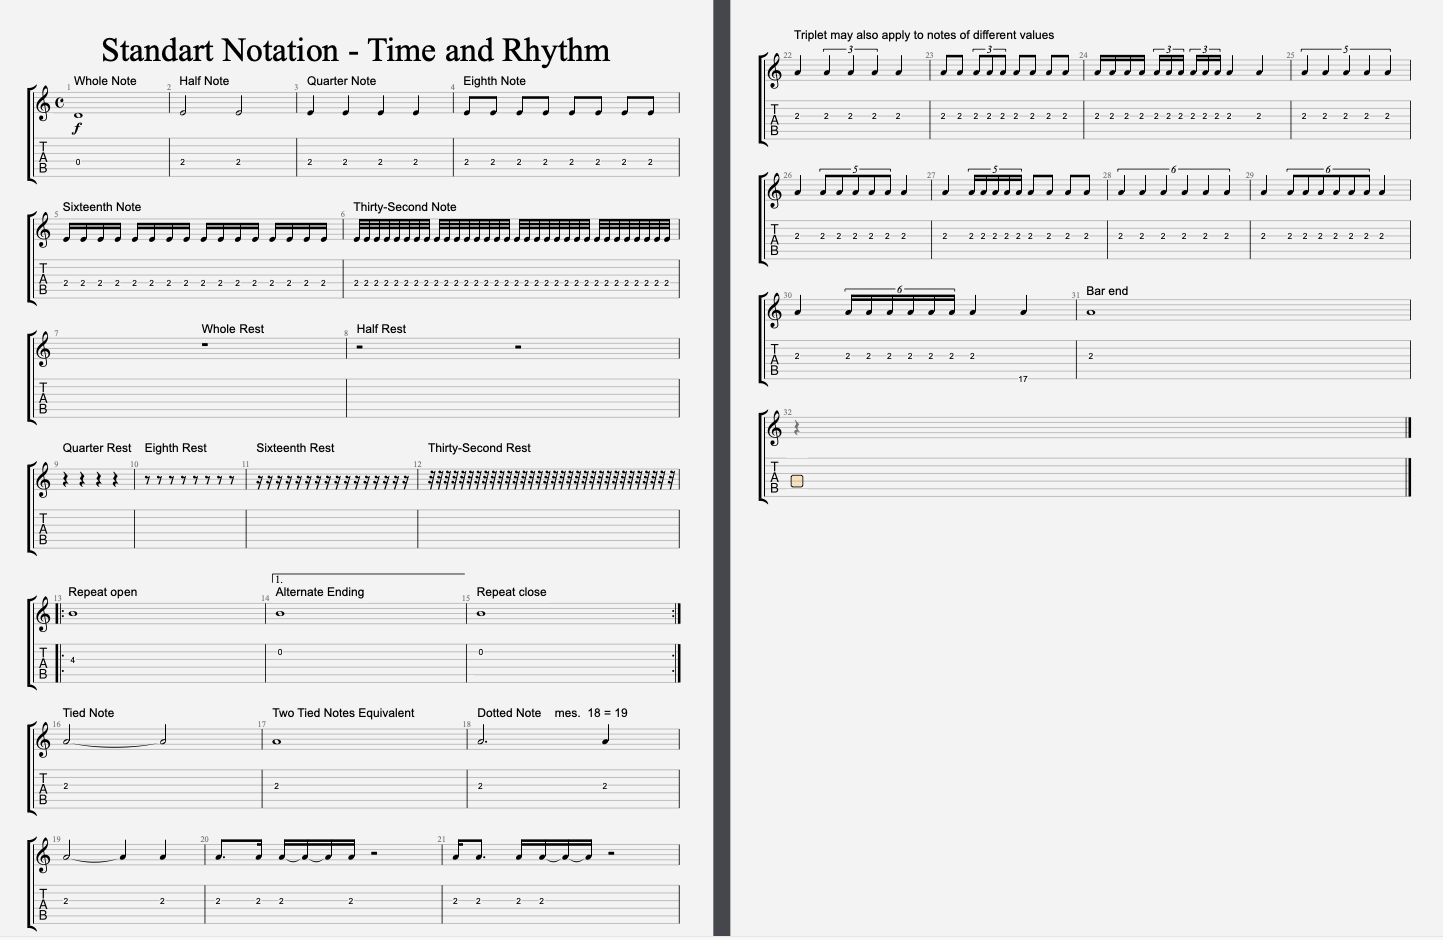 music standard notation, what is triplets,